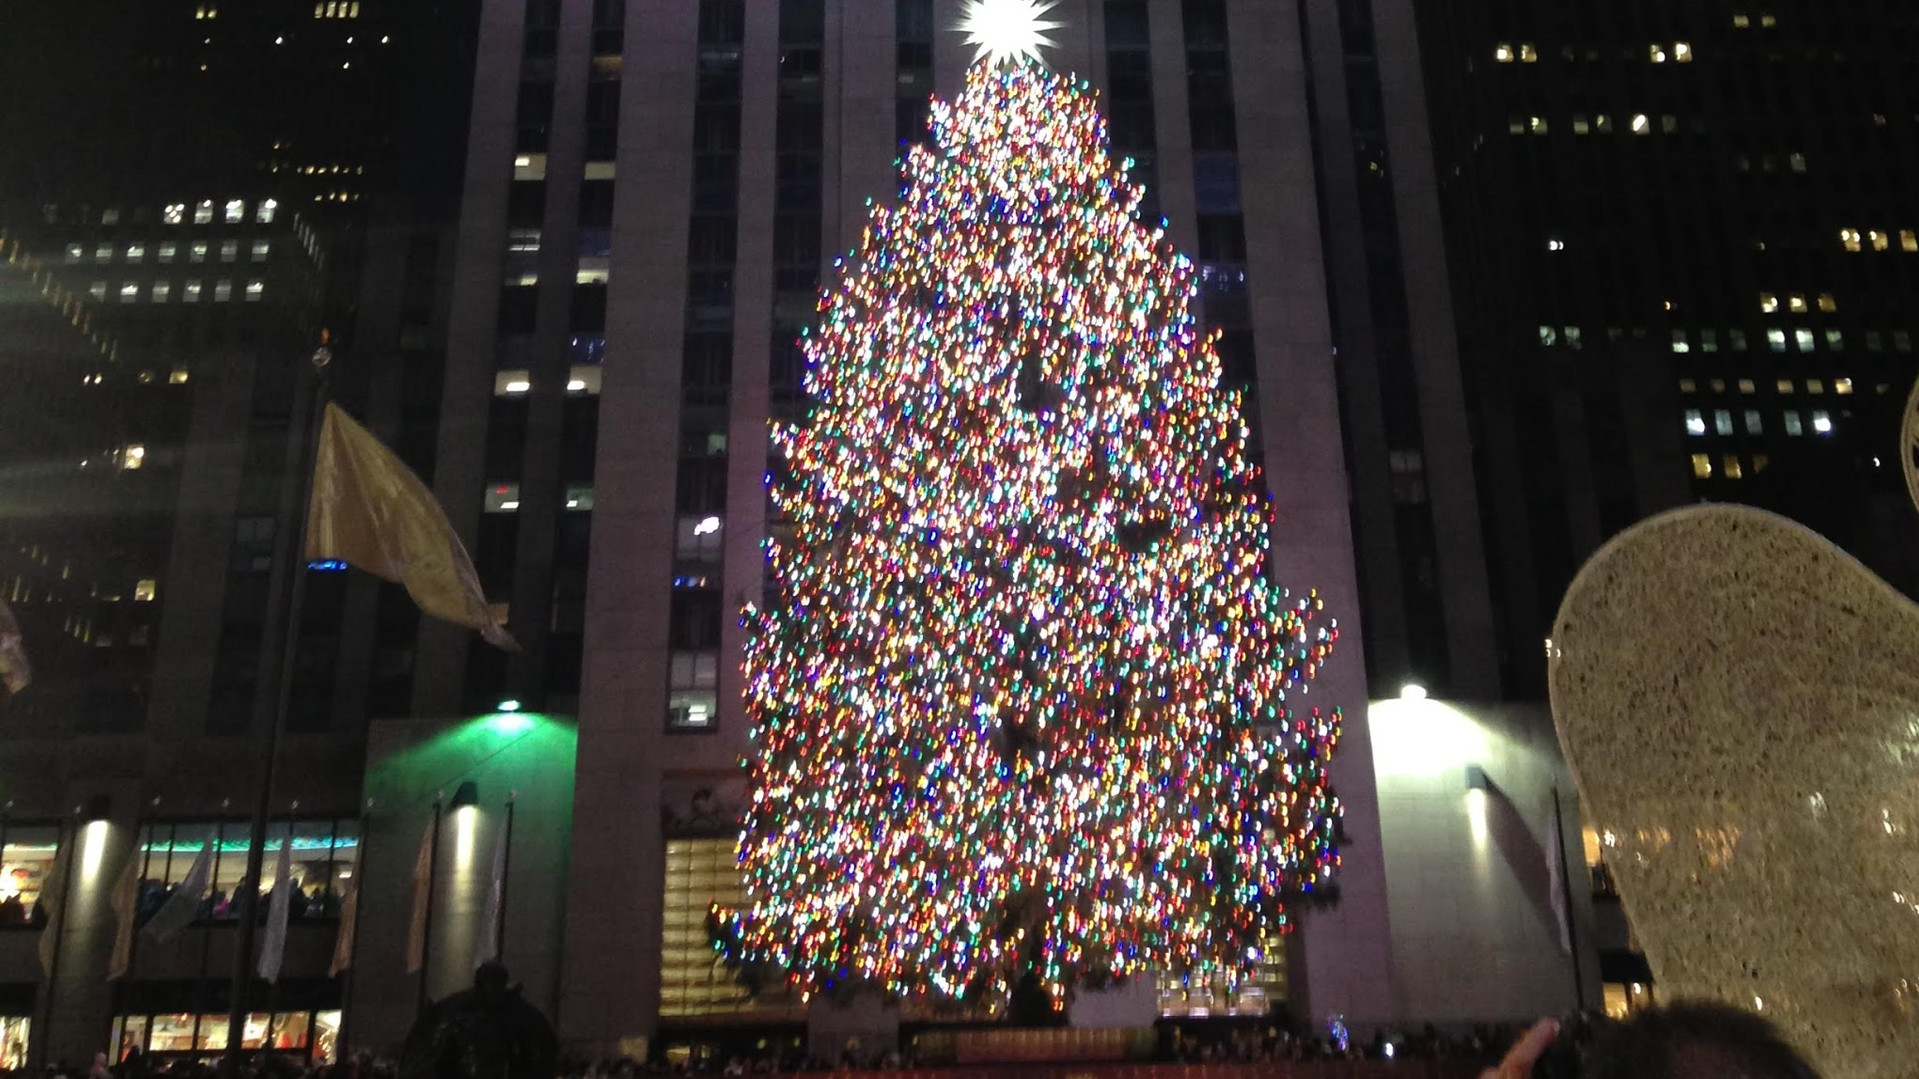 Rockfeller Building at Christmas is not to be missed!